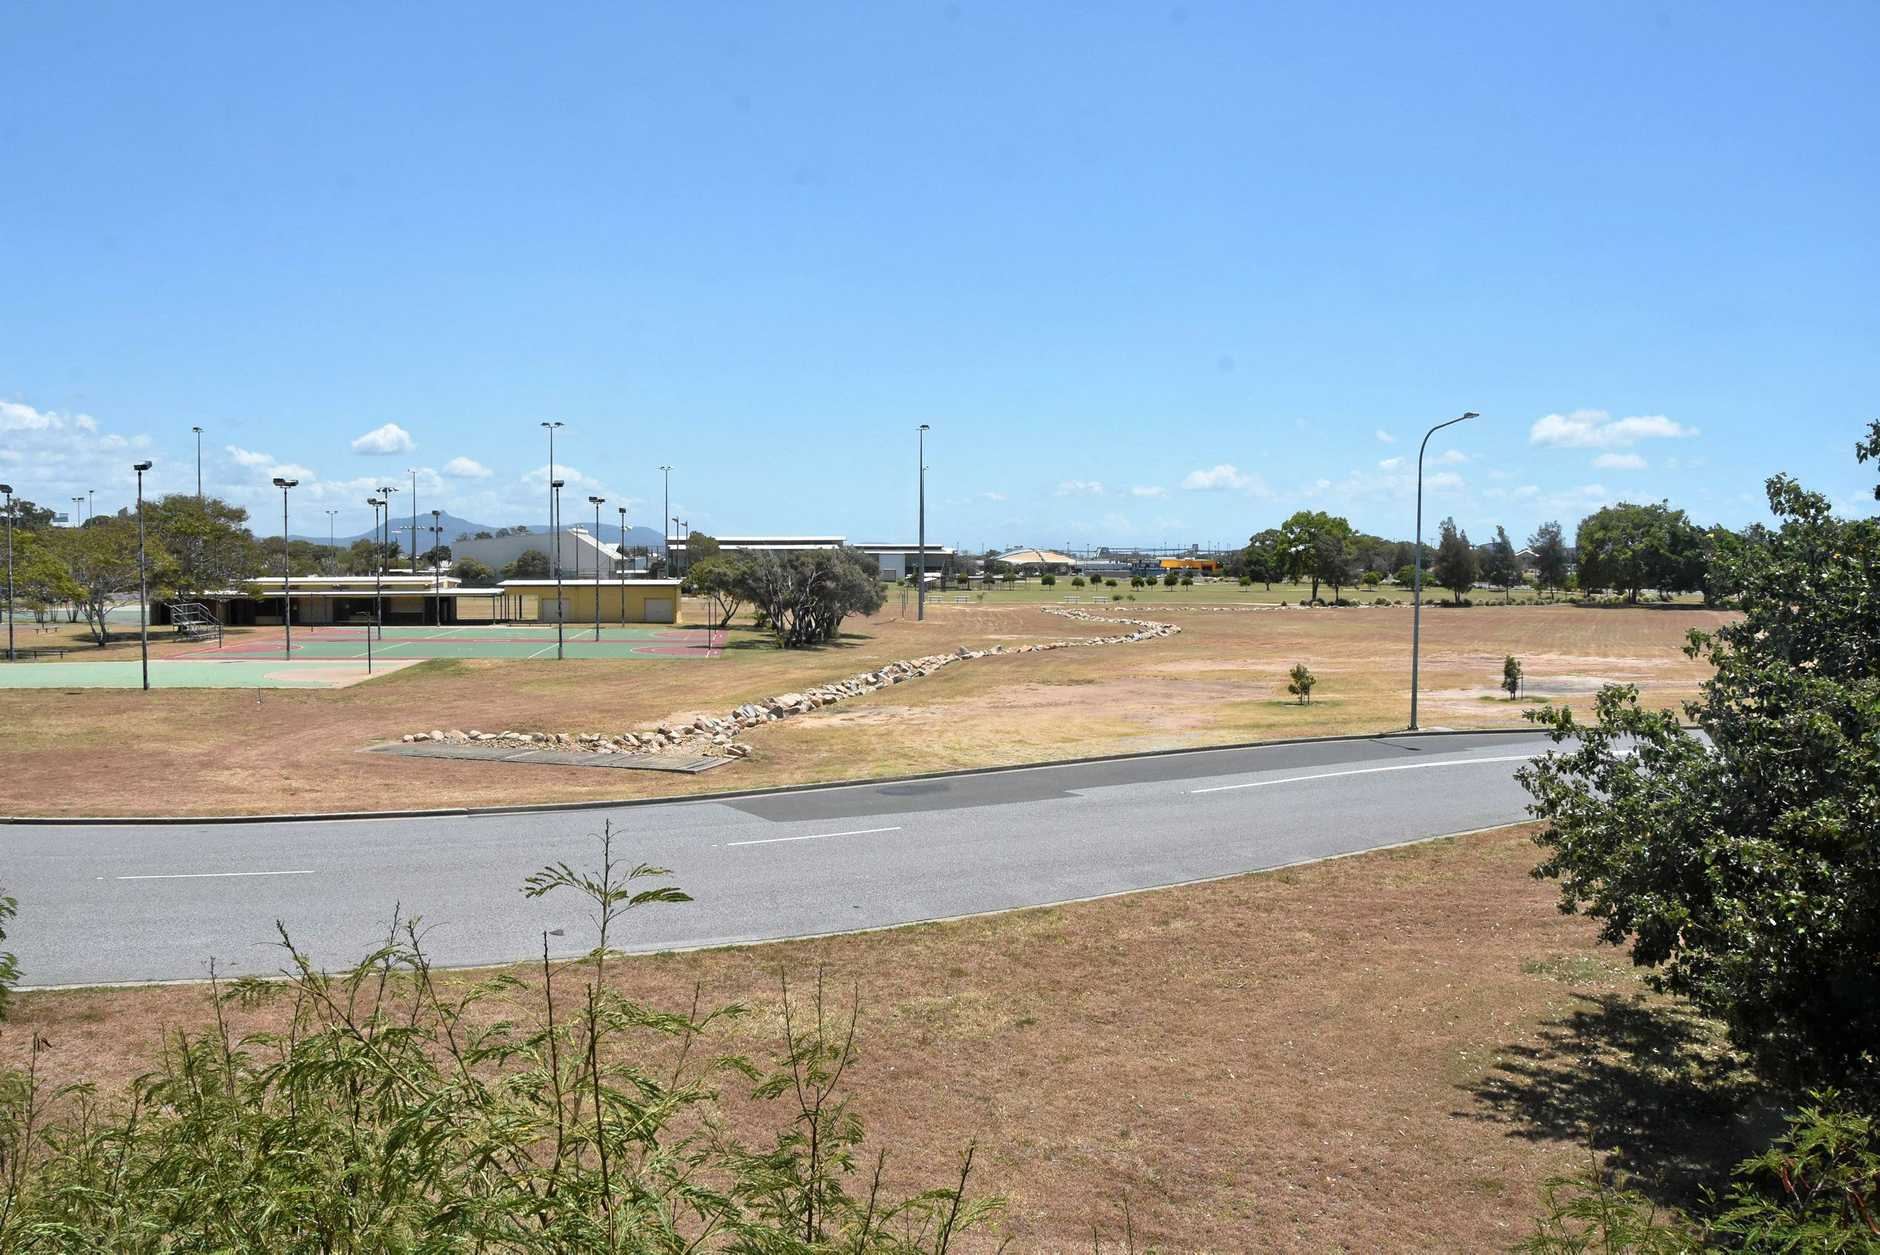 GET INVOLVED: Gladstone PCYC in collaboration with Gladstone Regional Council, is calling on the community to have a say on the future of Memorial Park in Gladstone.